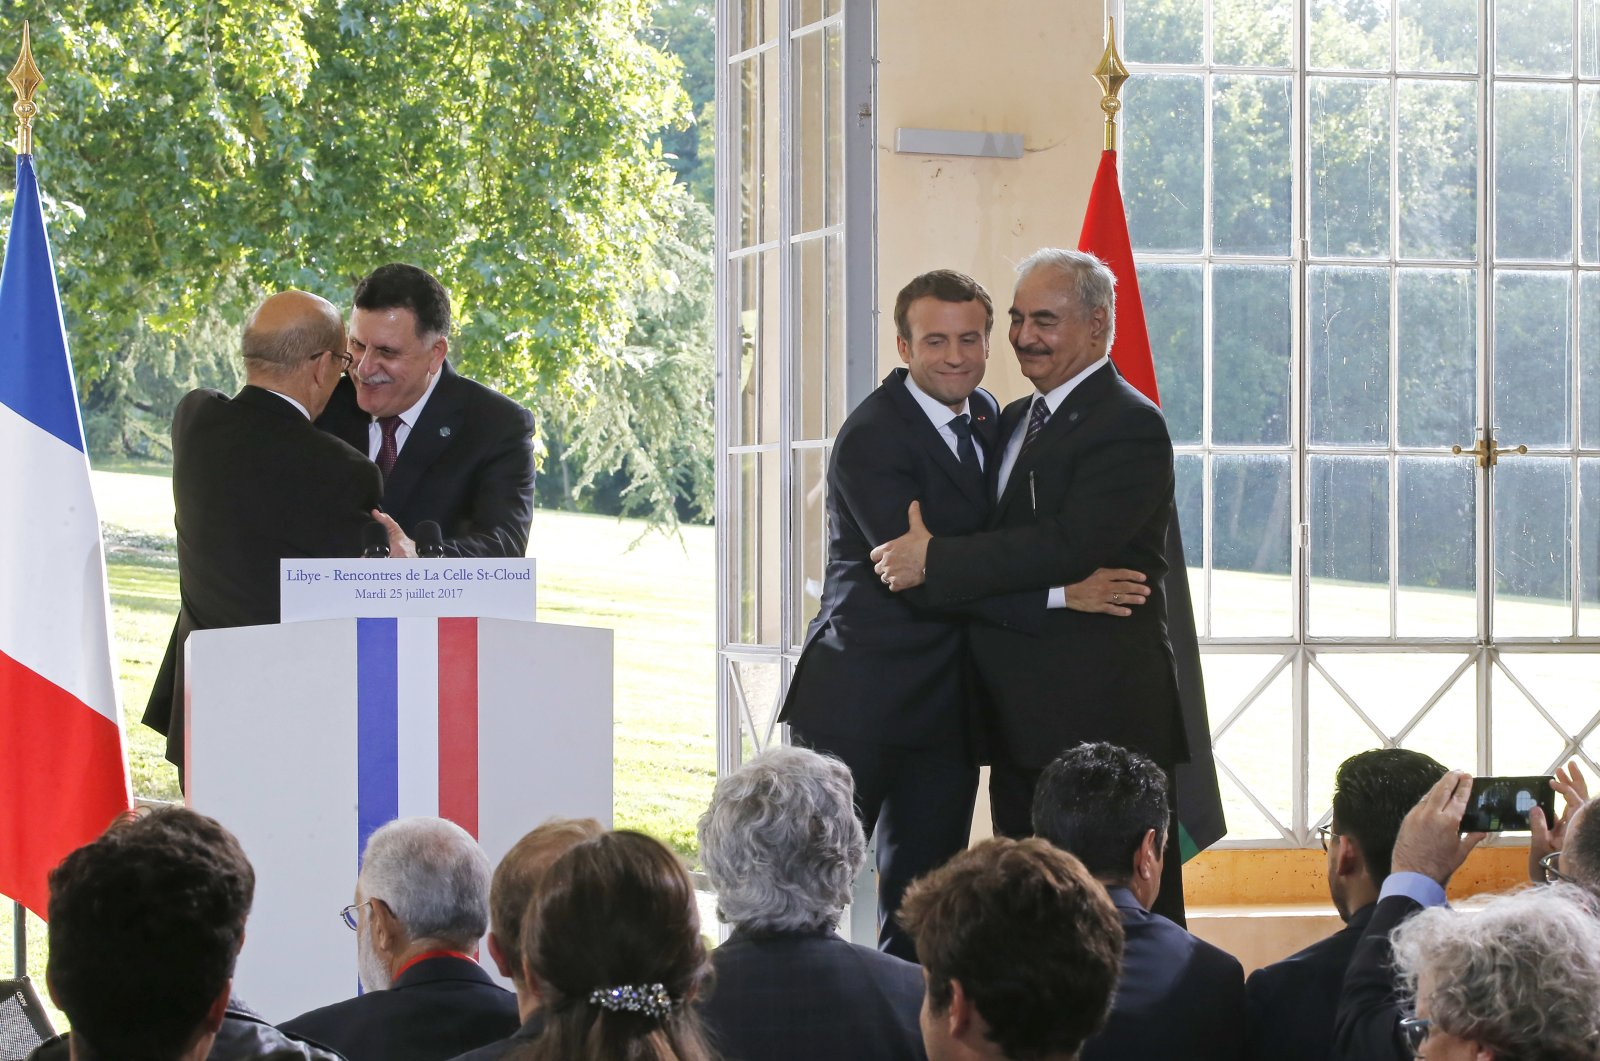 Libyan Prime Minister Fayez Sarraj (L) and French Foreign Minister Jean-Yves Le Drian (2nd from L), and French President Emmanuel Macron (2nd from R) and putschist Gen. Khalifa Haftar (R) hug each other after a news conference at the Chateau of the La Celle-Saint-Cloud, west of Paris, France, July 25, 2017. (AP Photo)